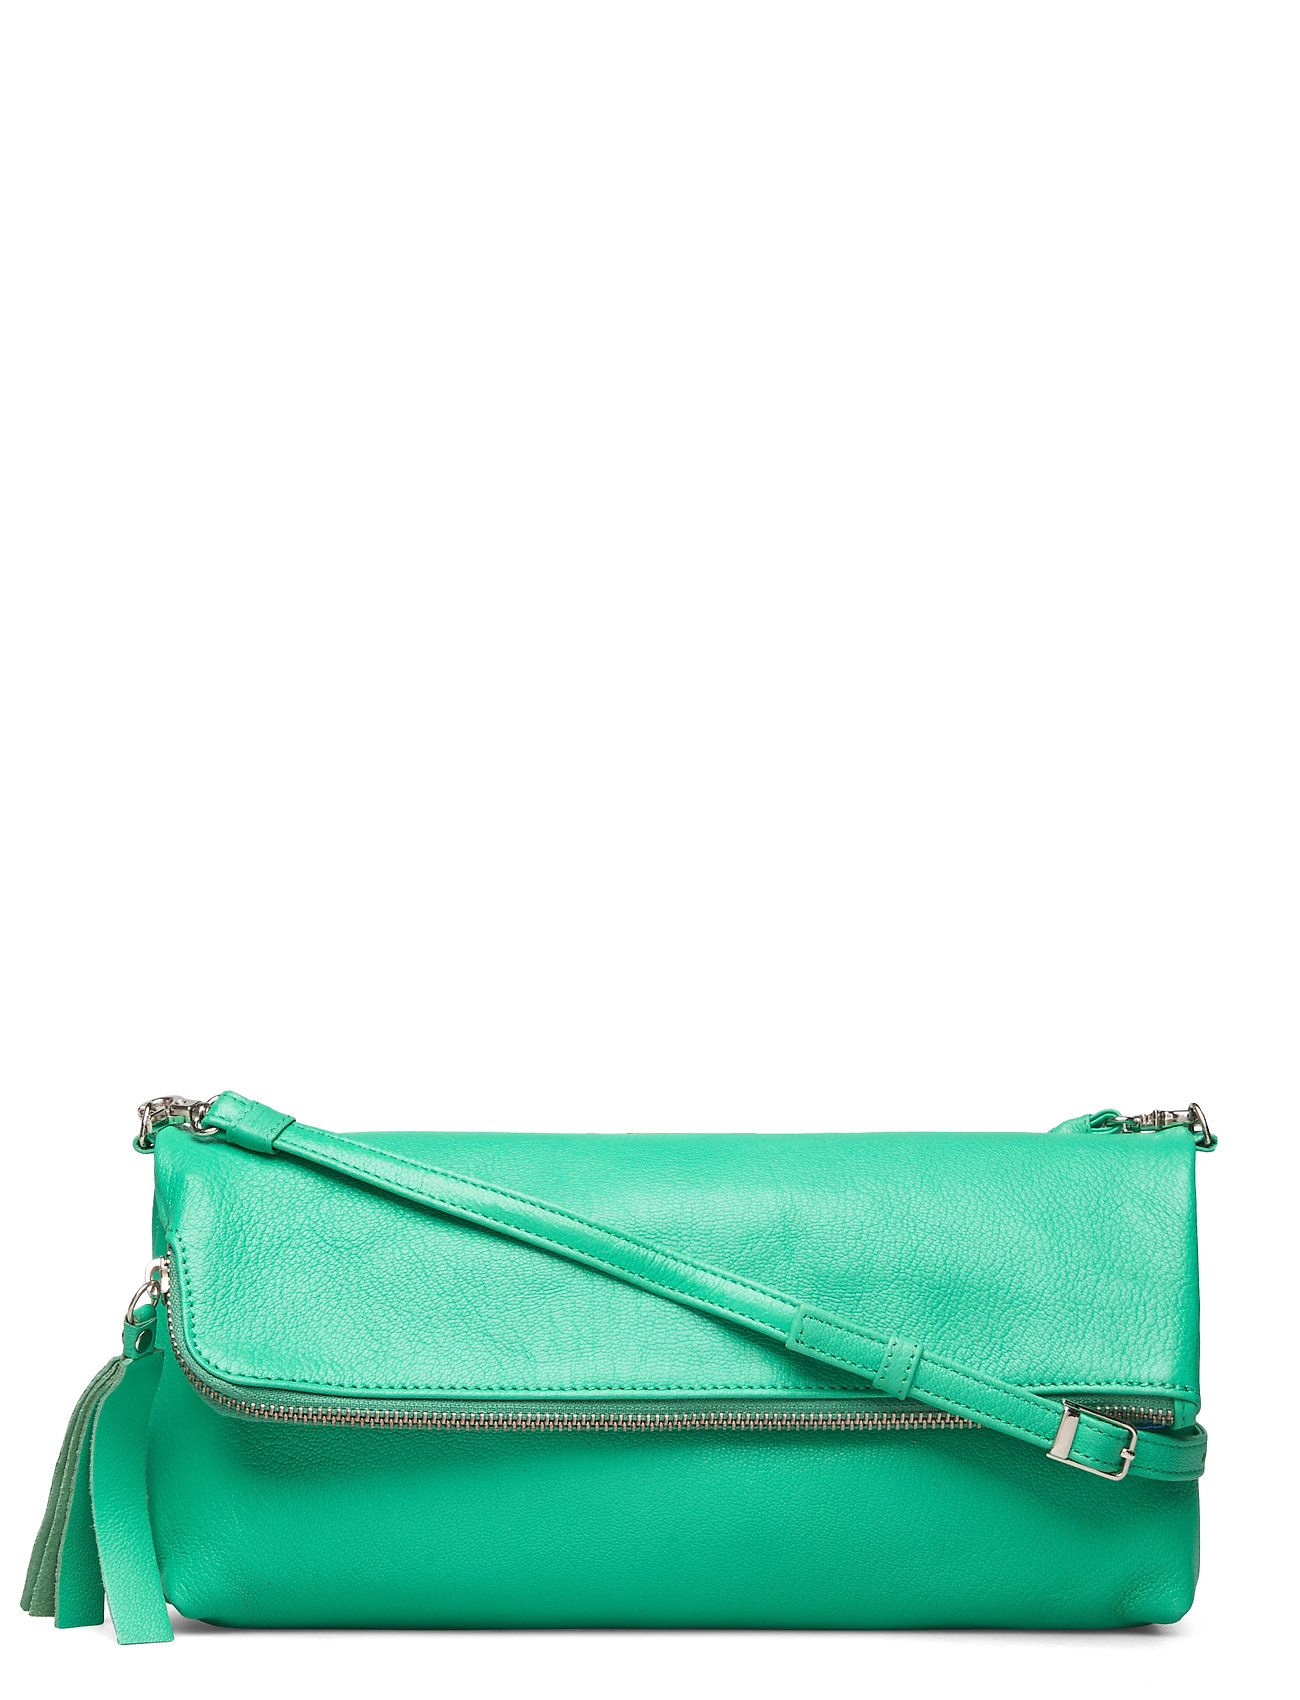 Image of Stefanie Large Pouch Bag Bags Small Shoulder Bags - Crossbody Bags Grøn LUMI (3369206127)